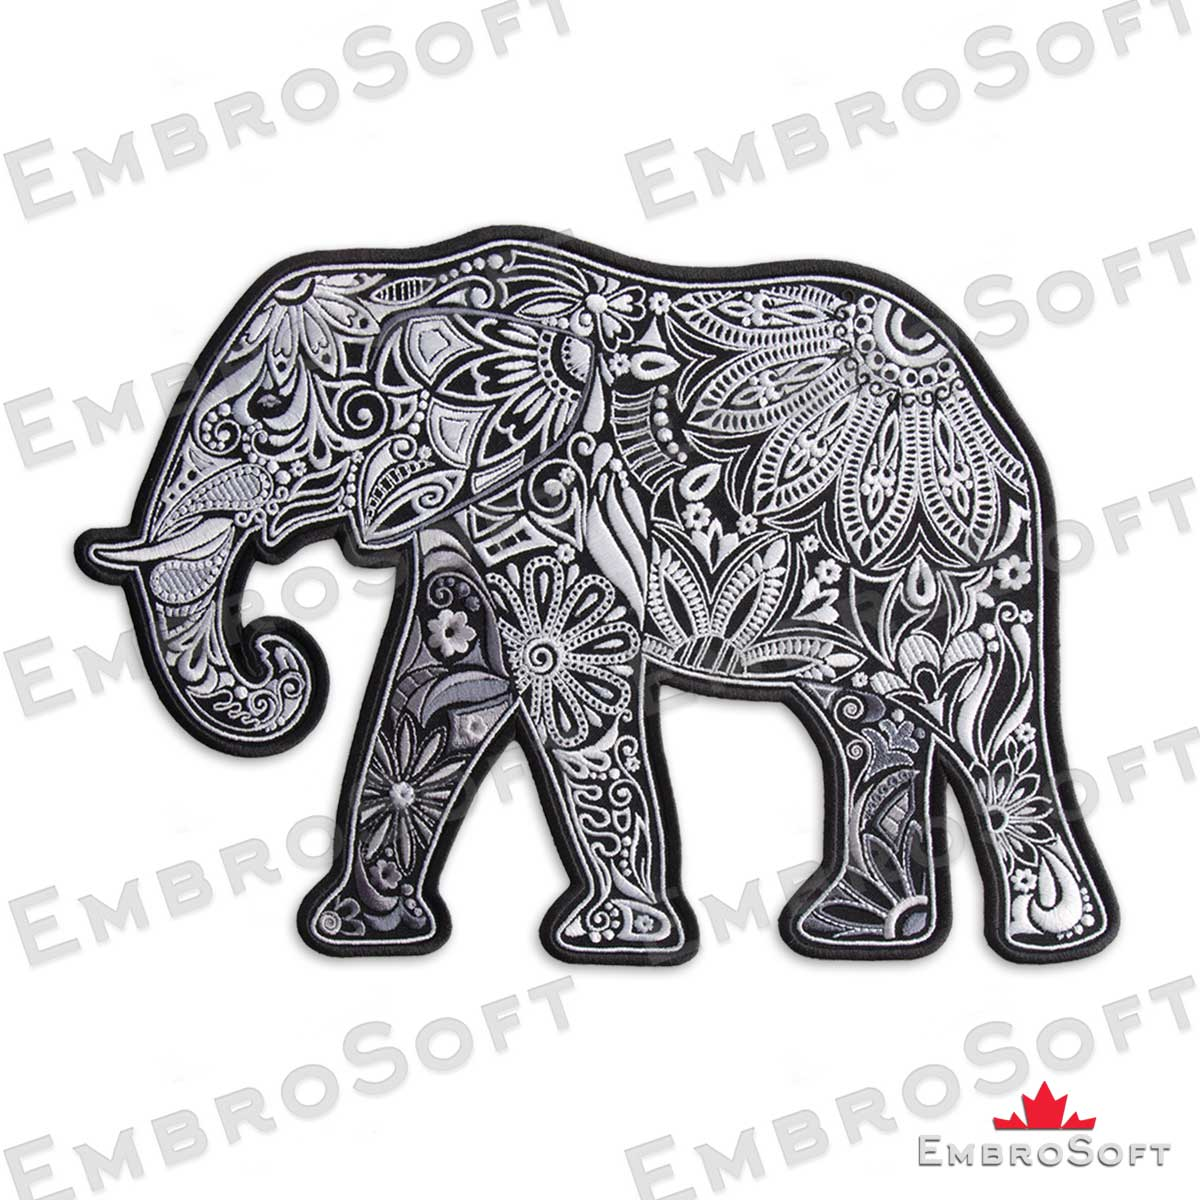 patterned elephant embroidered patch embrosoft